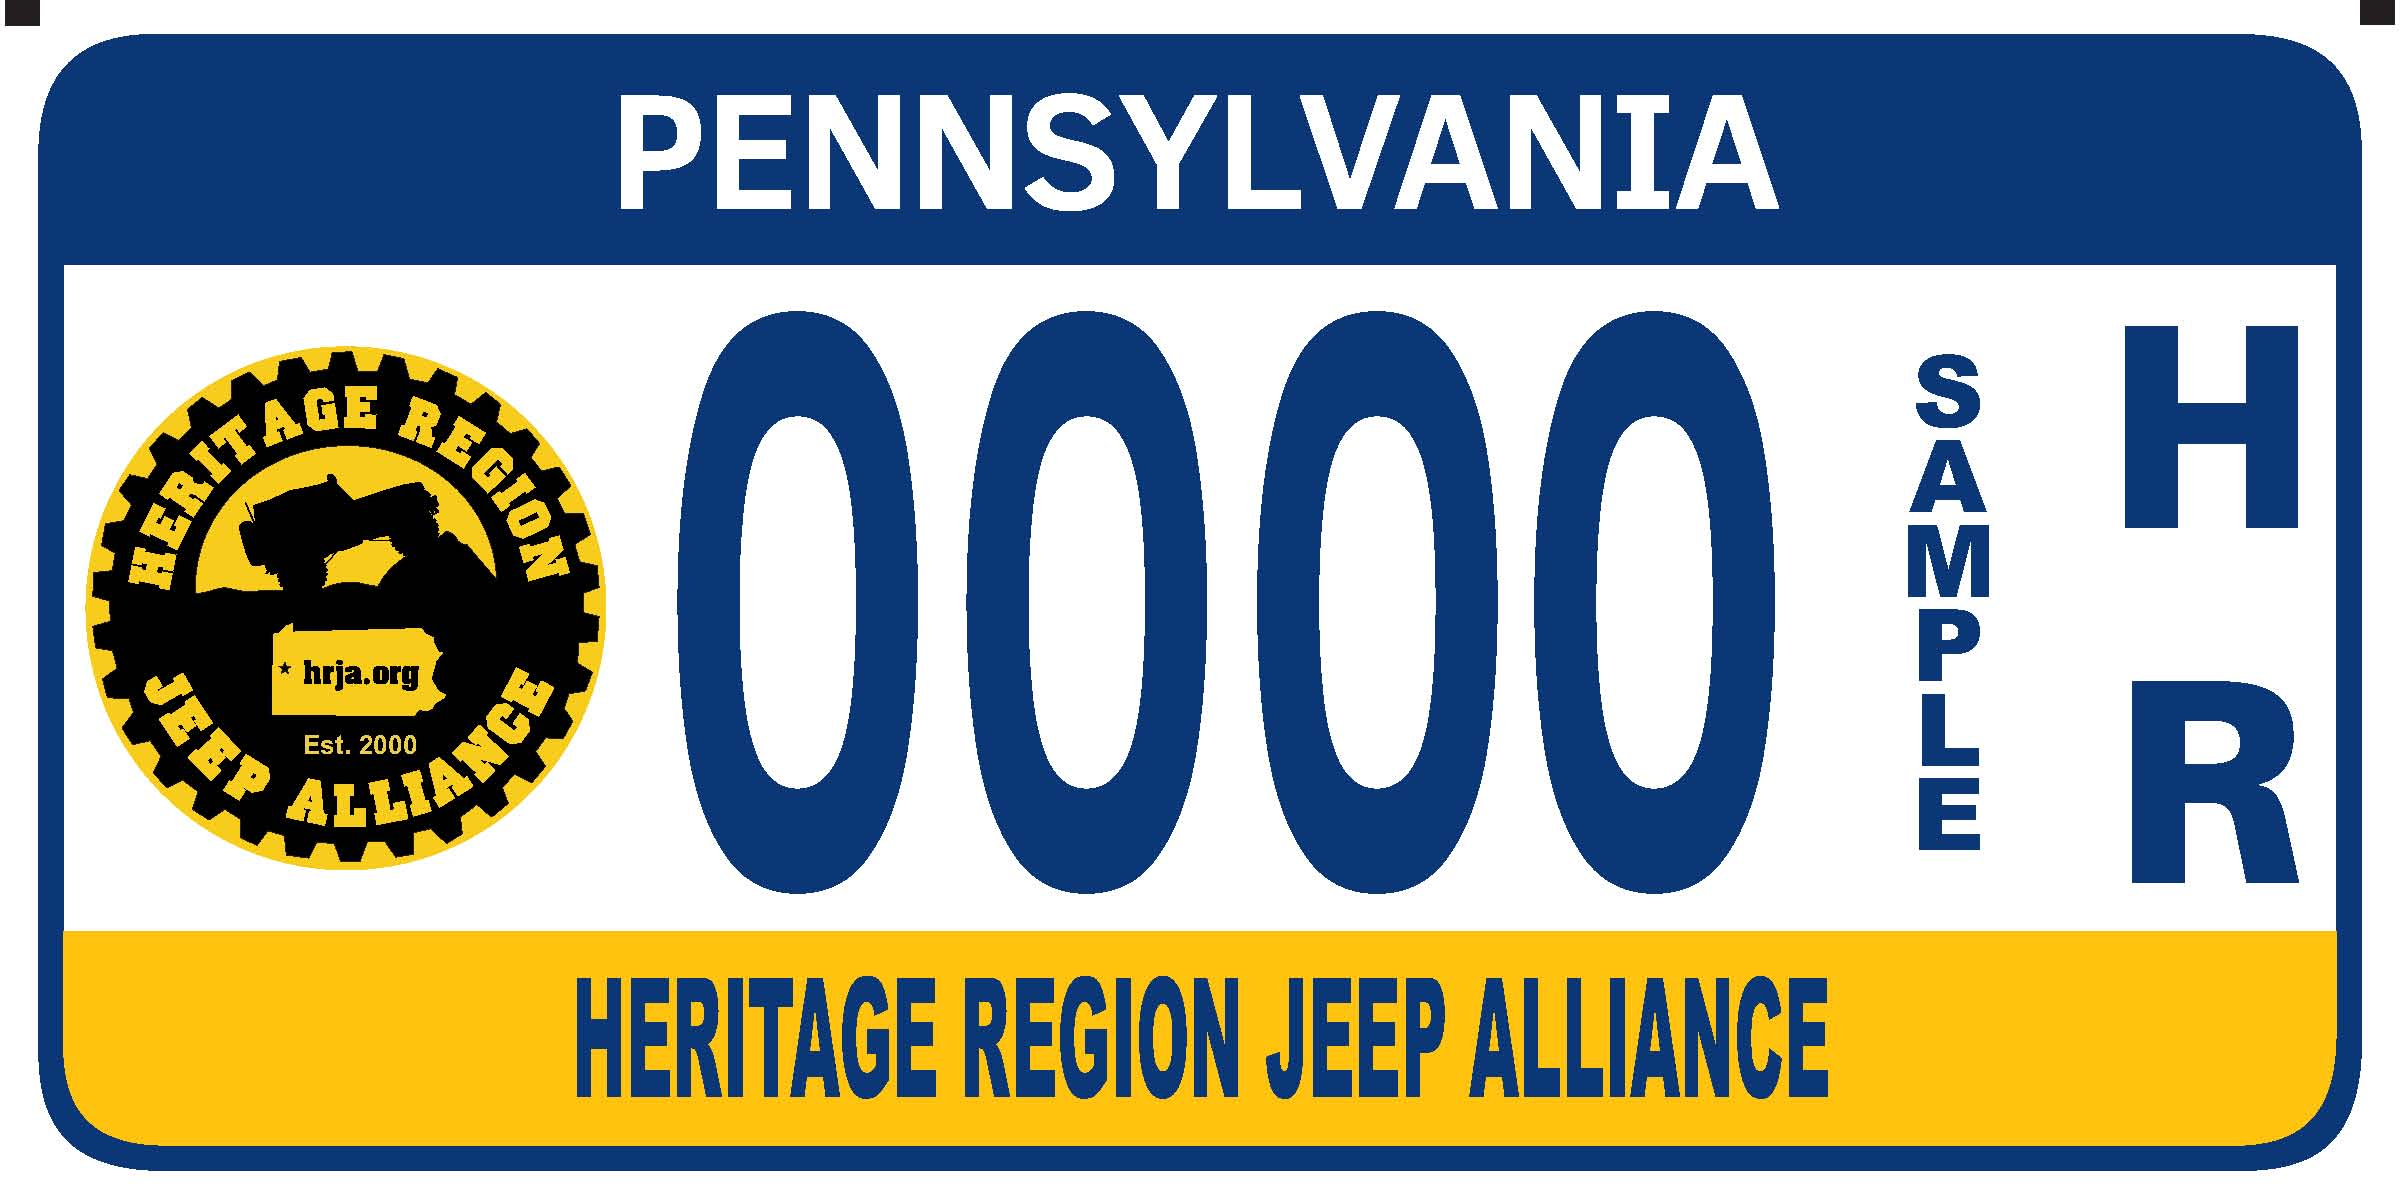 Heritage Region Jeep Alliance